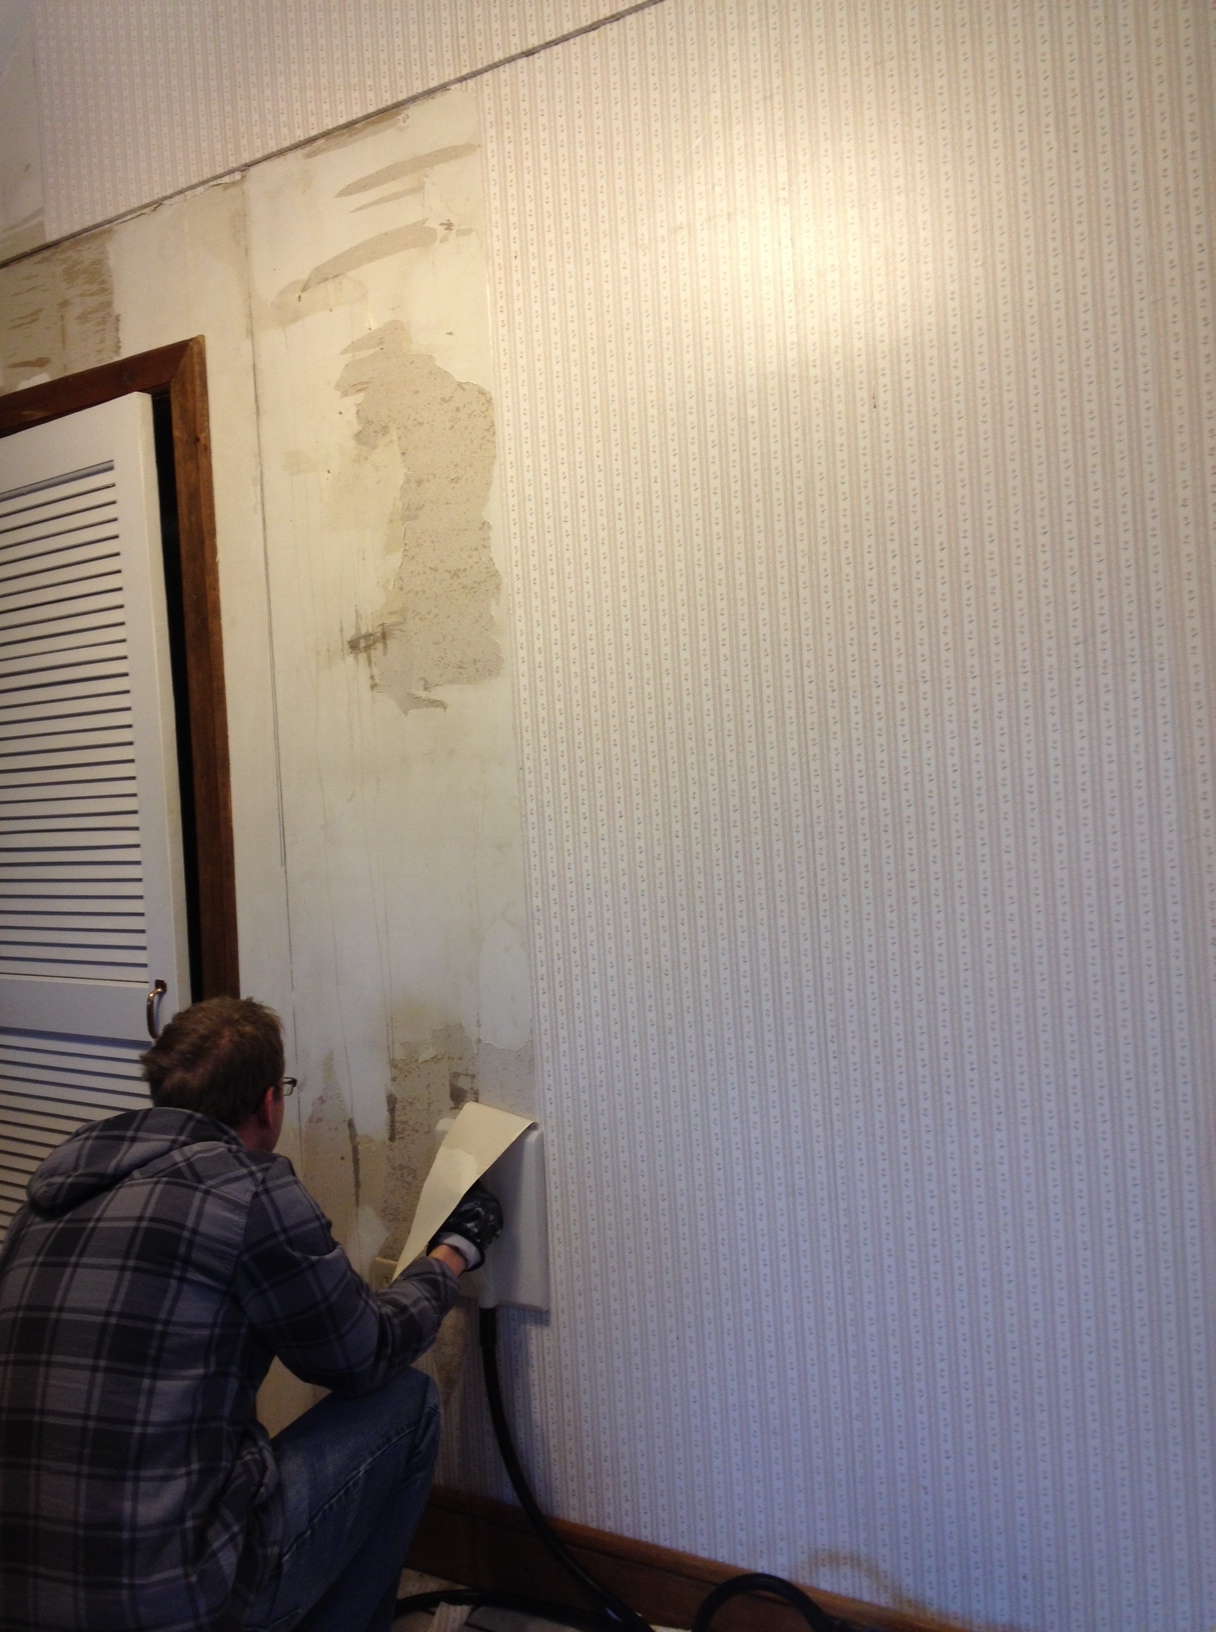 Steaming wallpaper on the kitchen wall. It was adhered to raw drywall so it's coming off a little rougher than we'd hoped.